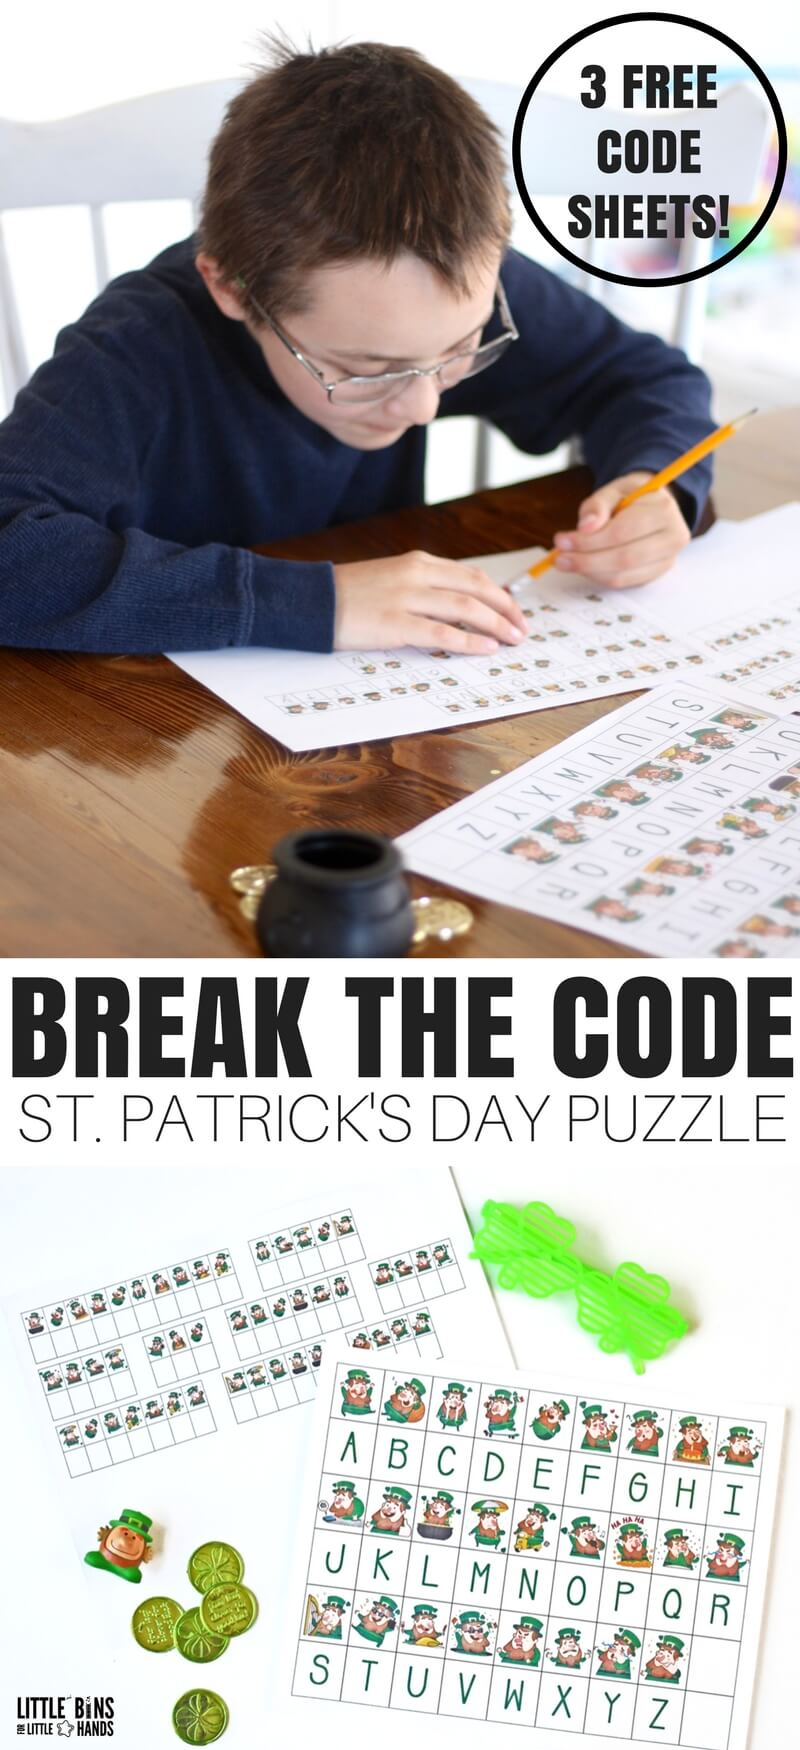 This season we have a couple new kinds of activities to offer that my son loves! Our St Patricks Day Code Breaking activity worksheets are perfect for home or classroom, and the kids will love finding out the secret messages. Solving codes are a neat way to make STEM fun!